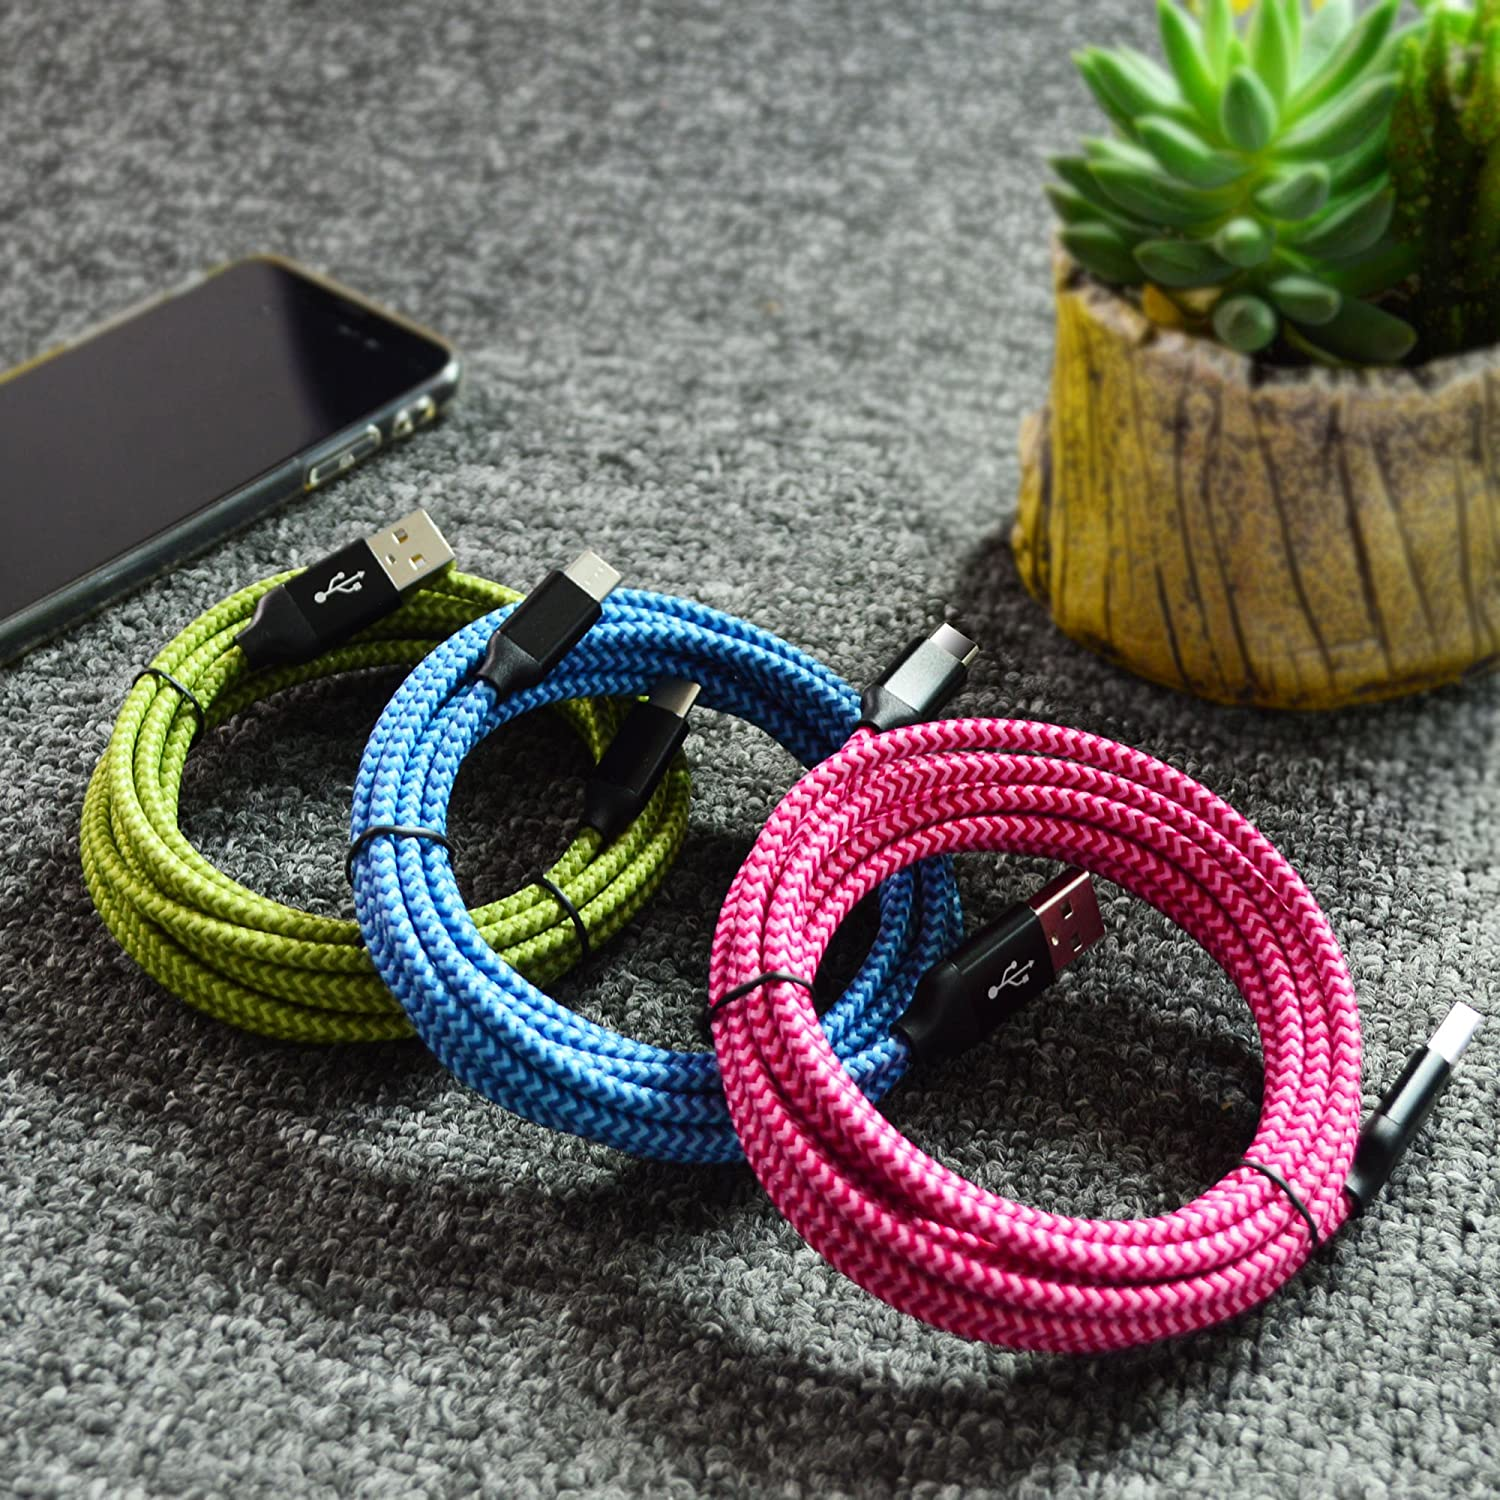 G7 Google Pixel 3 Moto G6 HTC 10 LG V30 G6 G7 Blue USB Type C Cable 3 Pack 10FT UMECORE USB Charging Cable Type C Braided Cord for Samsung Galaxy S20 S10 S9 S8 Note 8 A5 A20 Oneplus 6 5 3T